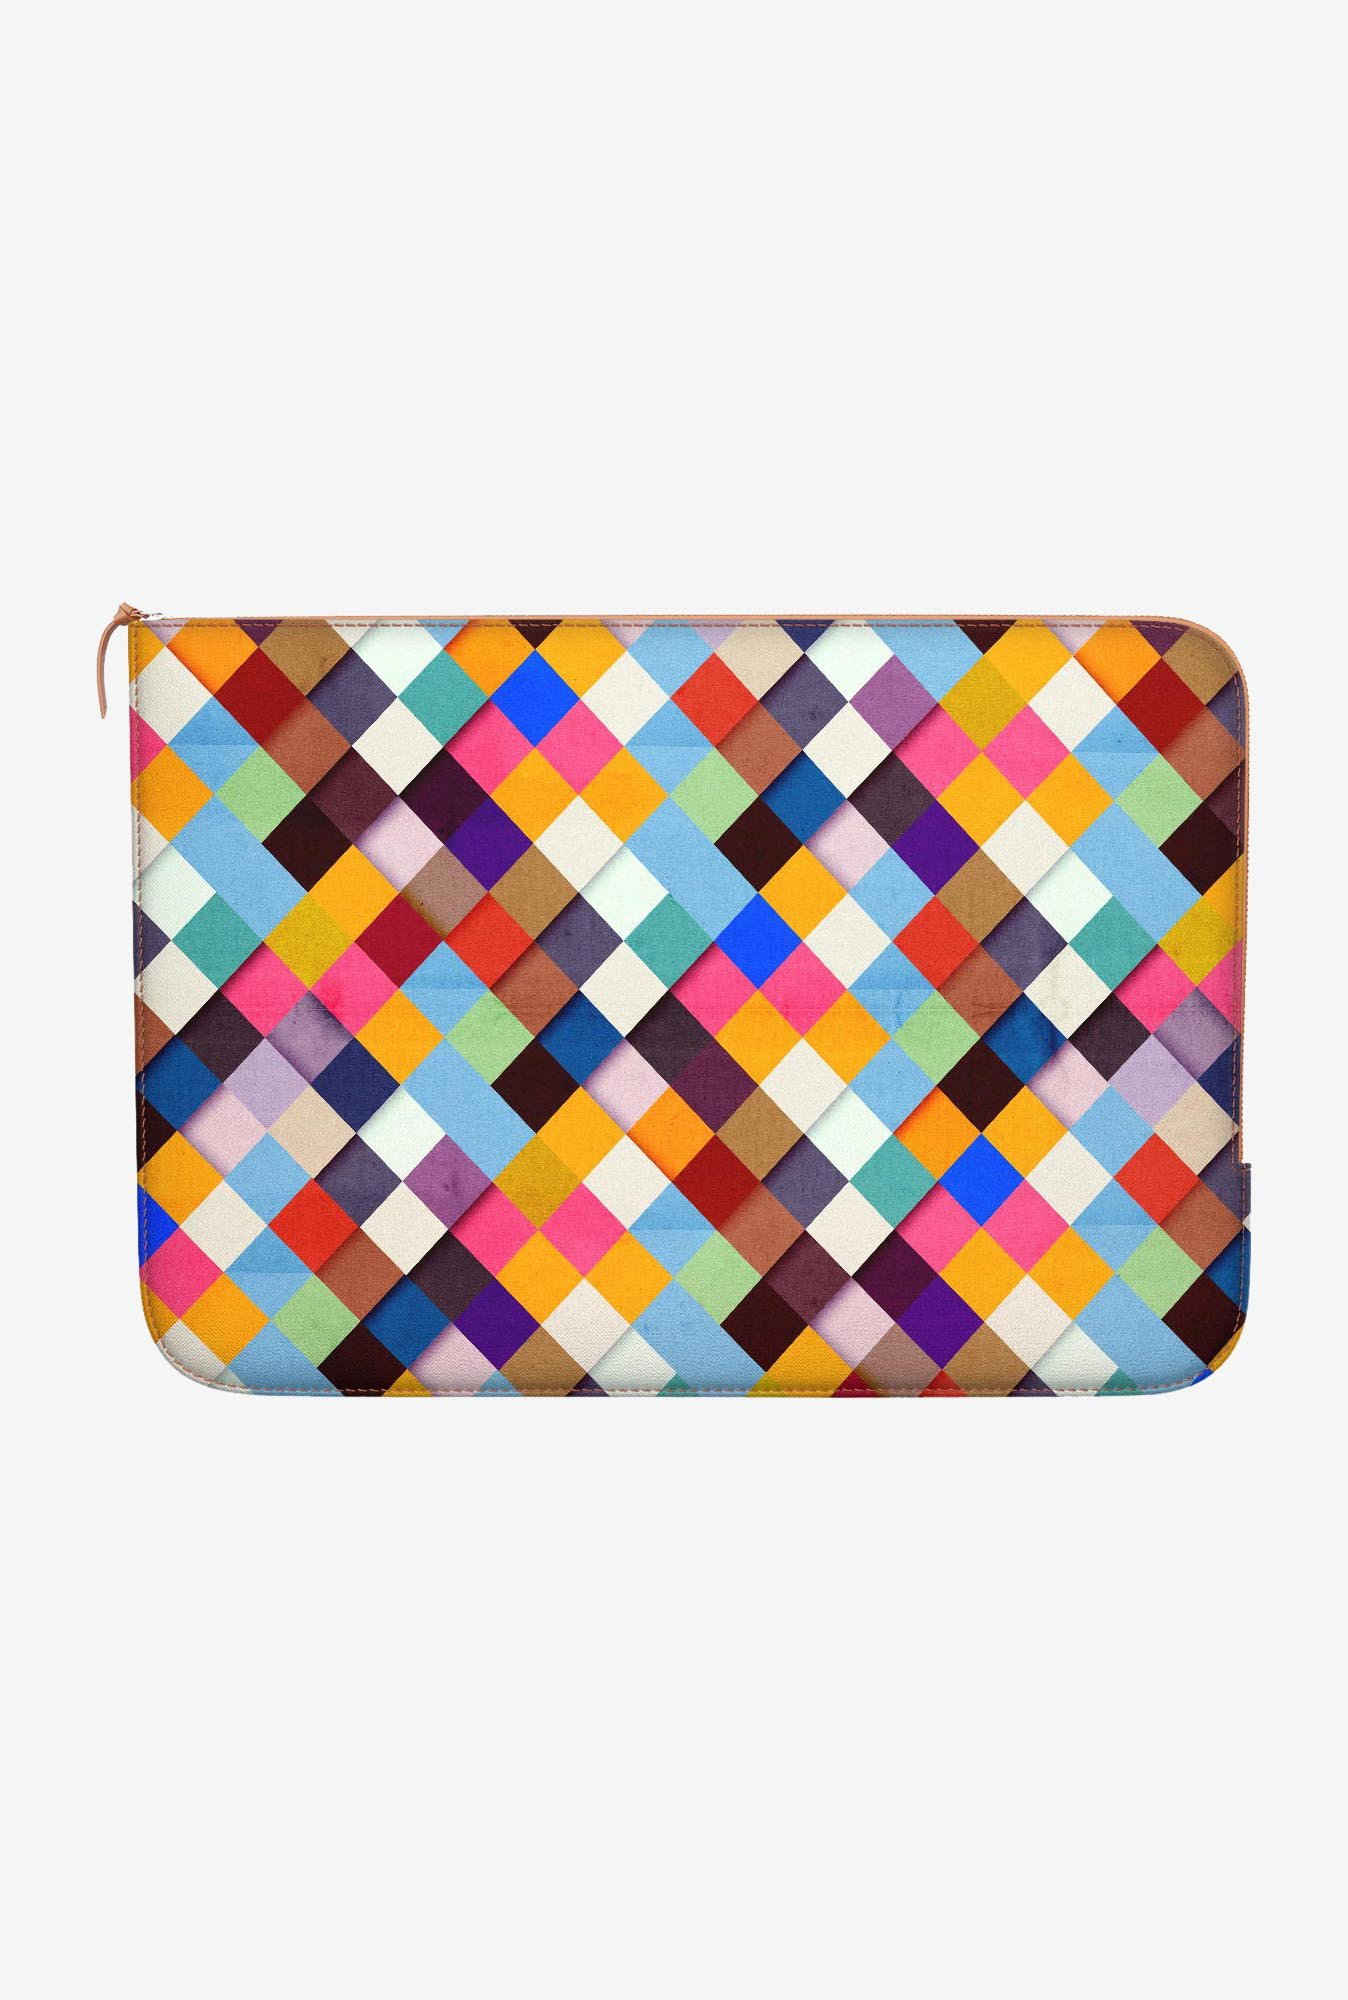 DailyObjects Pass this Bold MacBook Pro 15 Zippered Sleeve